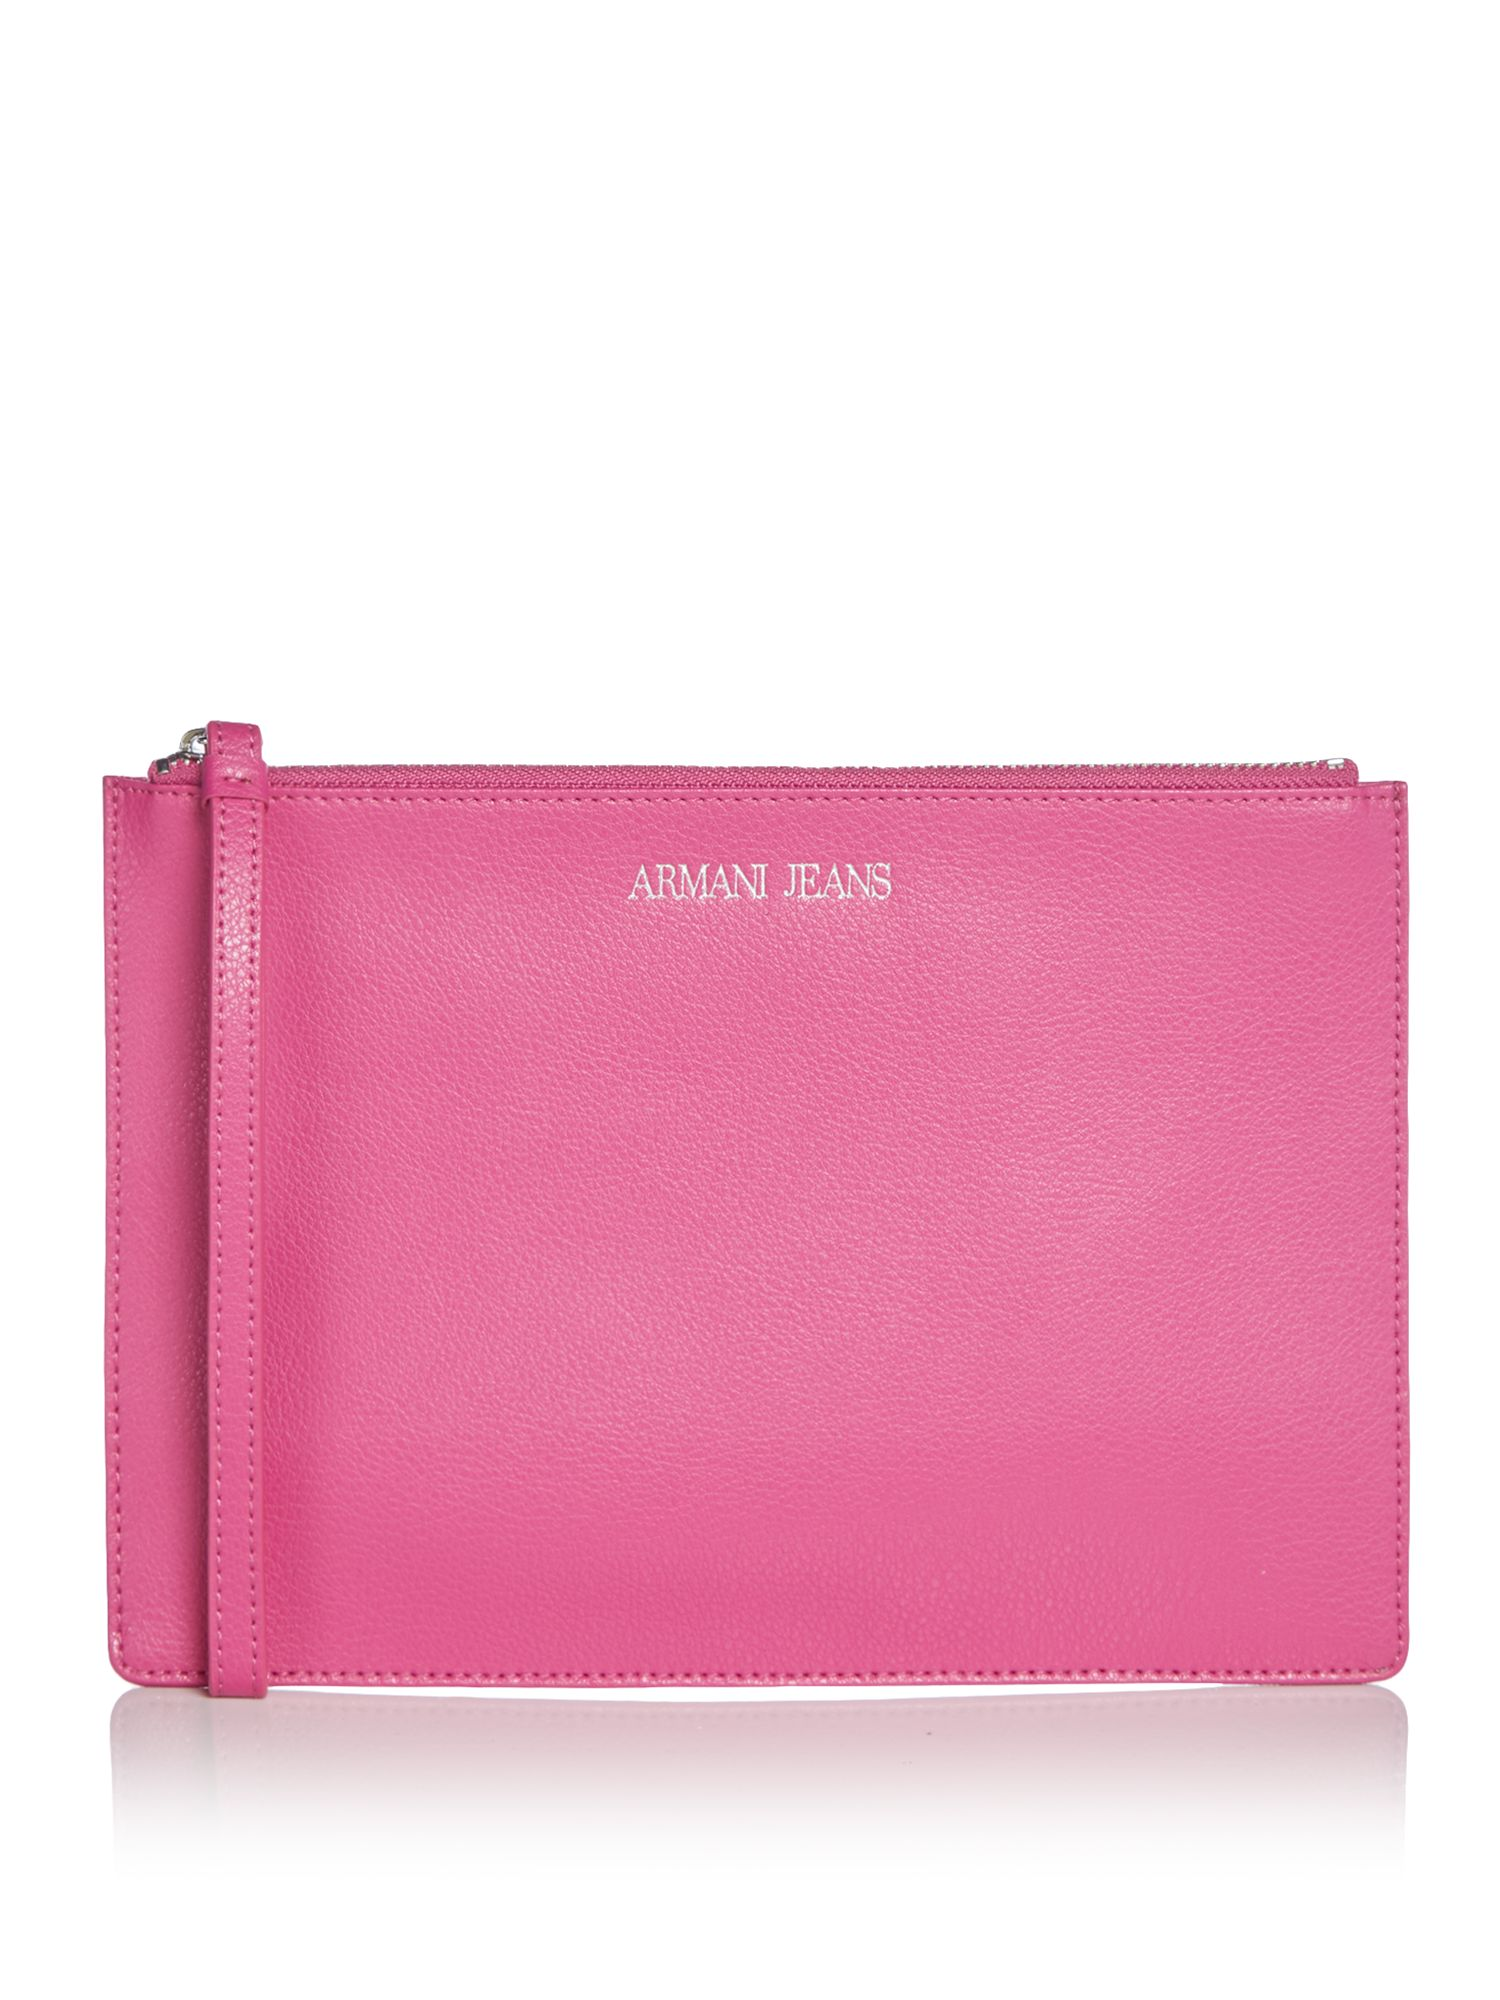 Armani Jeans Eco leather clutch bag, Pink